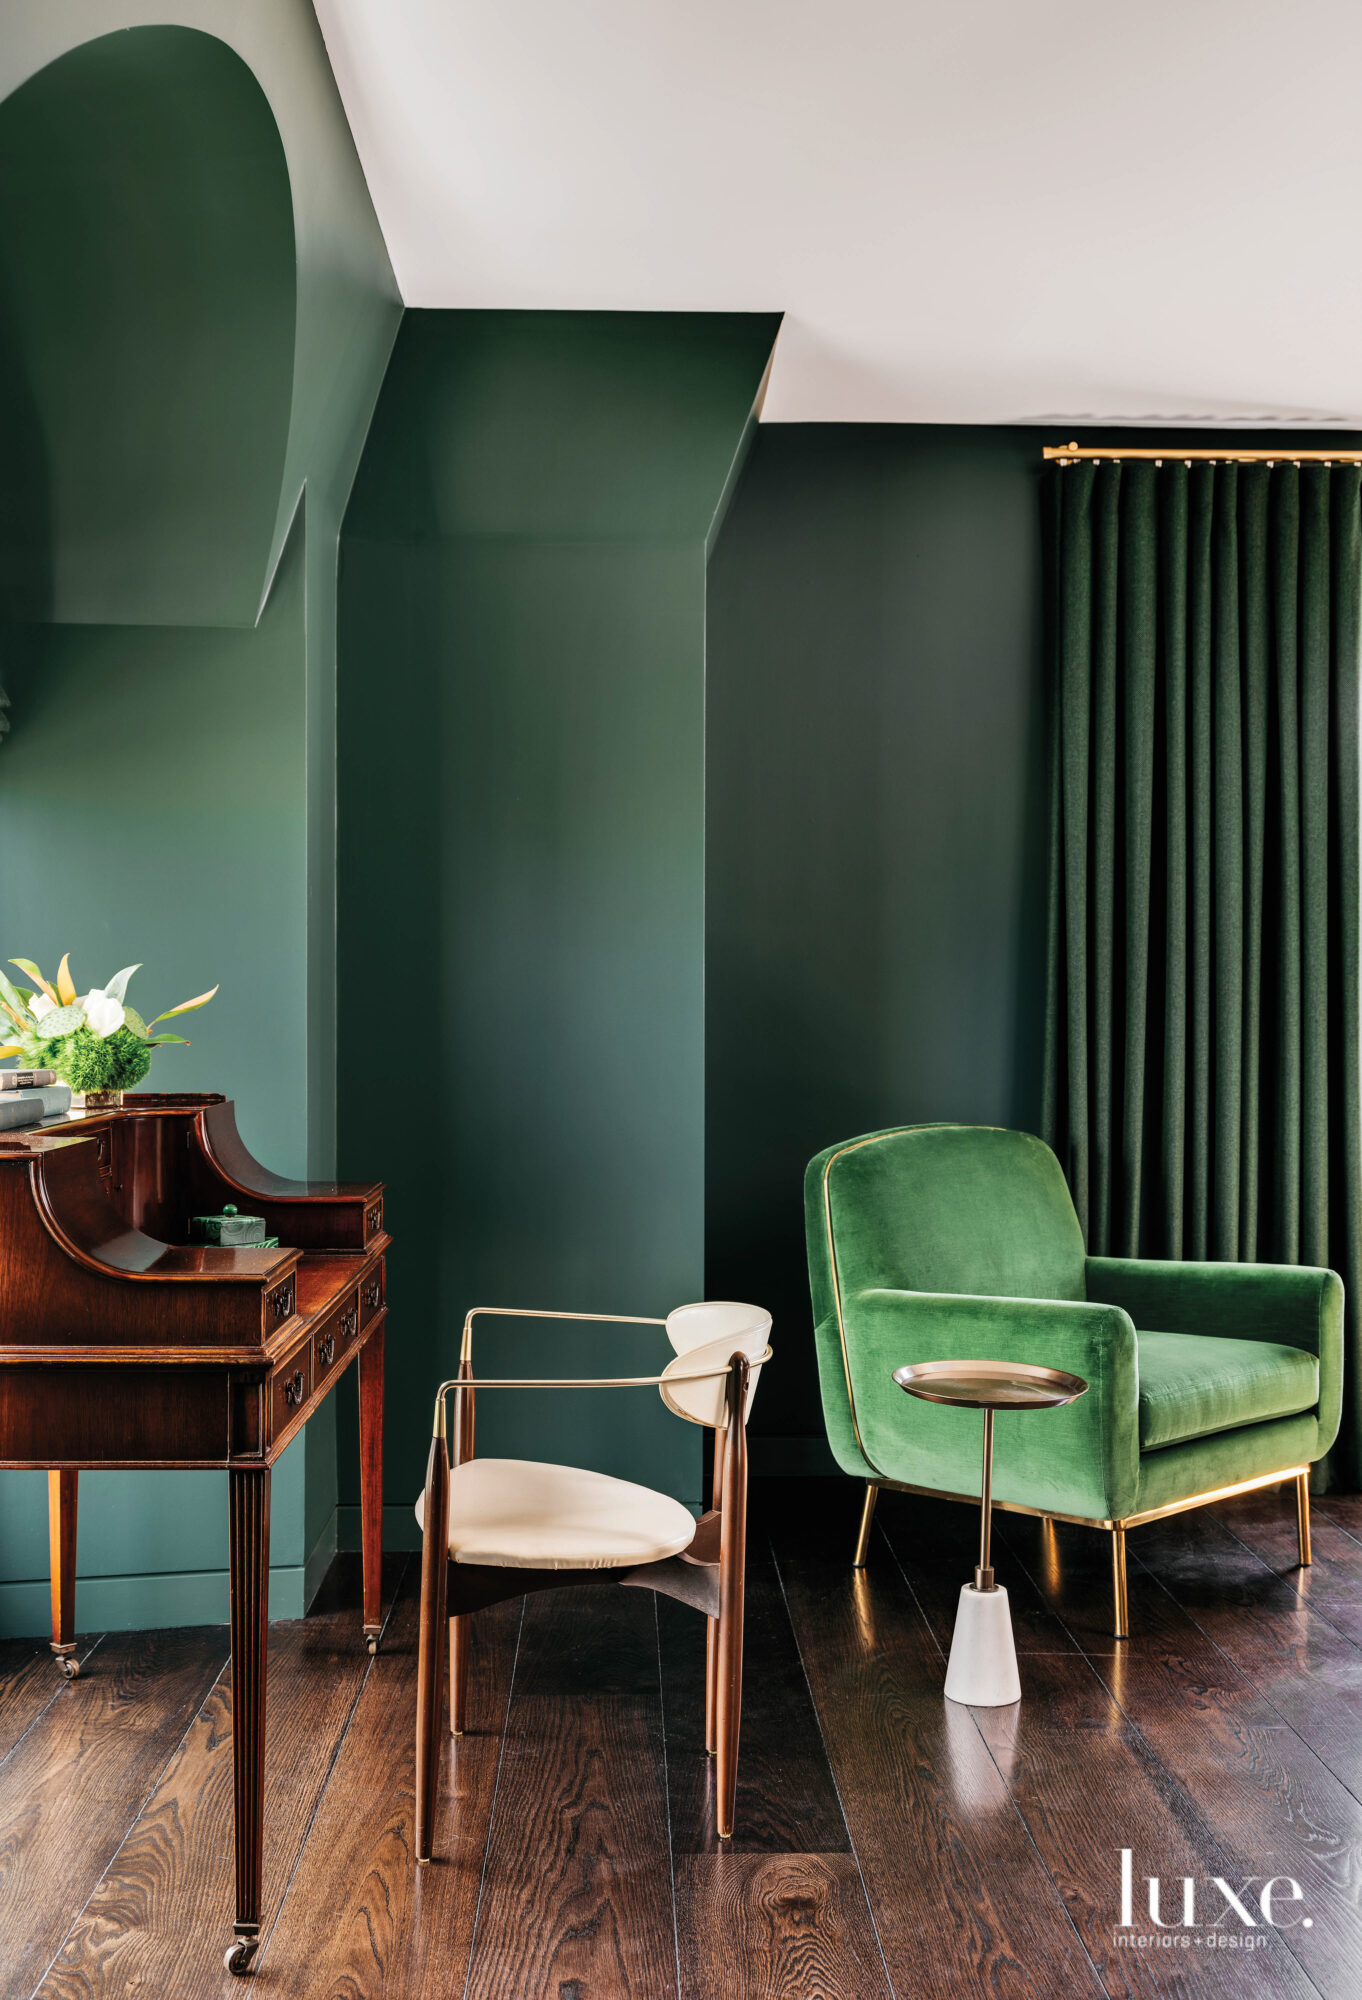 A guest room is done in shades of green.